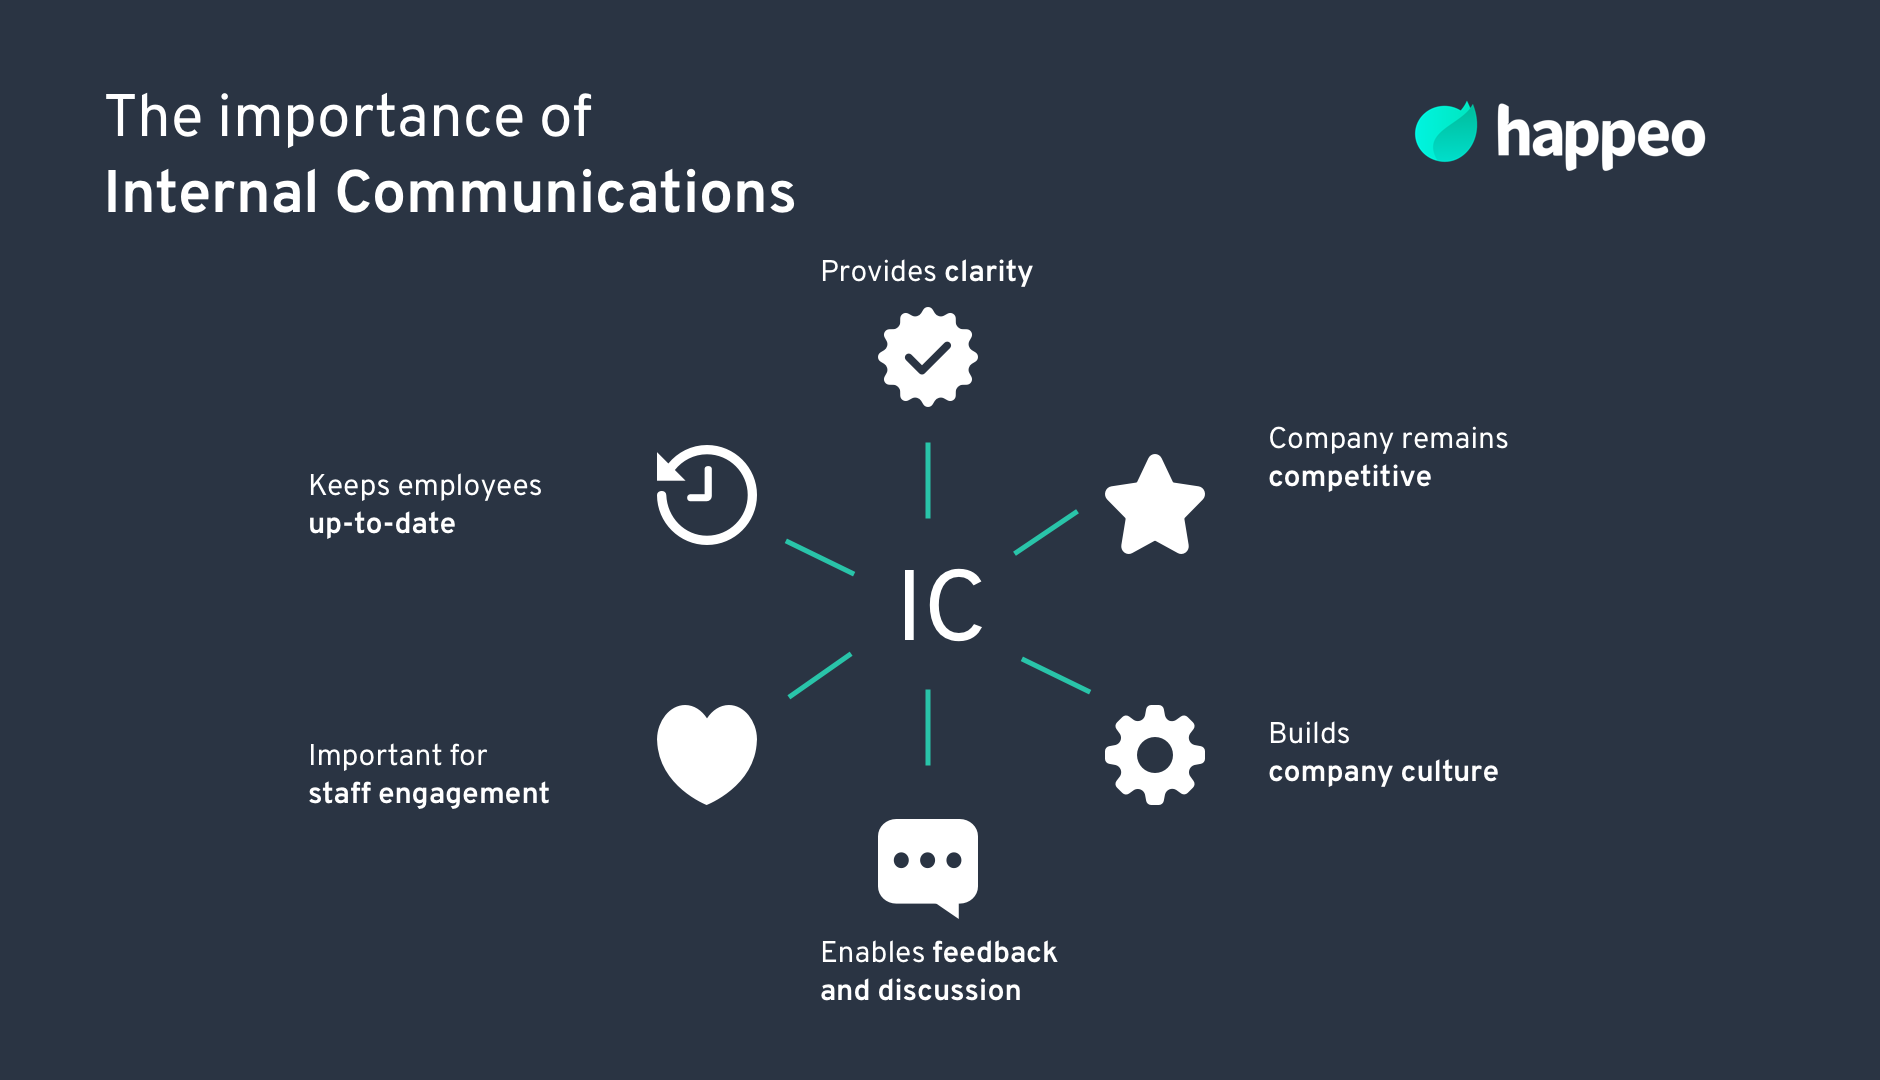 Why is internal communication important?